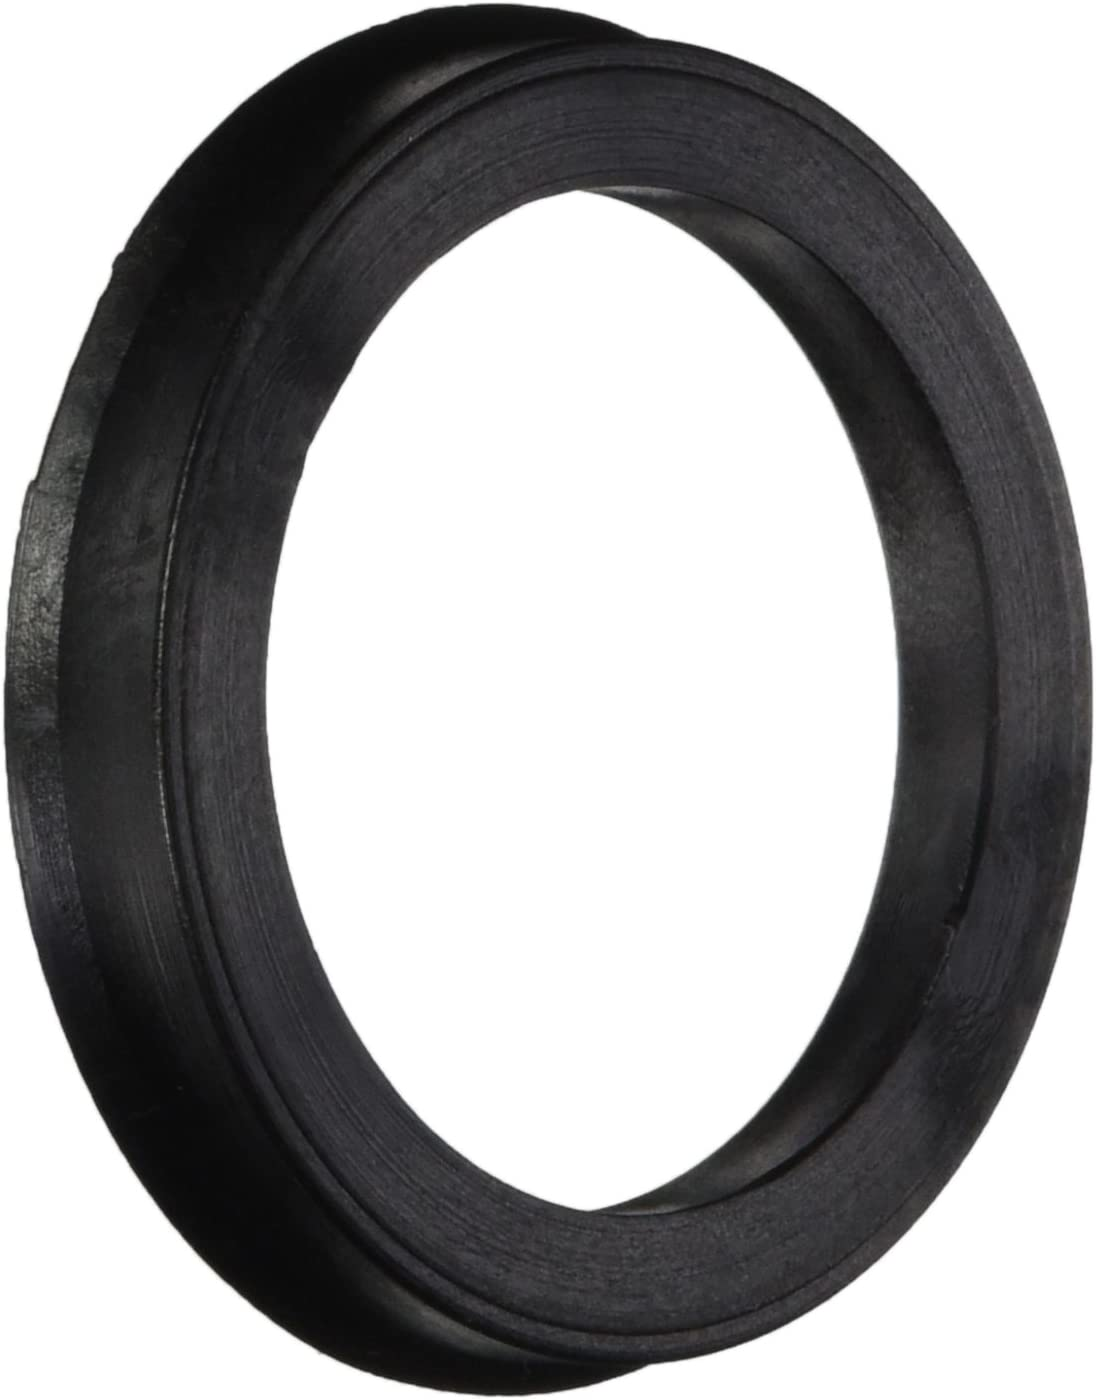 WHEEL CONNECT Hub Centric Rings O.D:72.6-I.D:56.1mm Aluminium Alloy Hubrings A Set of 4